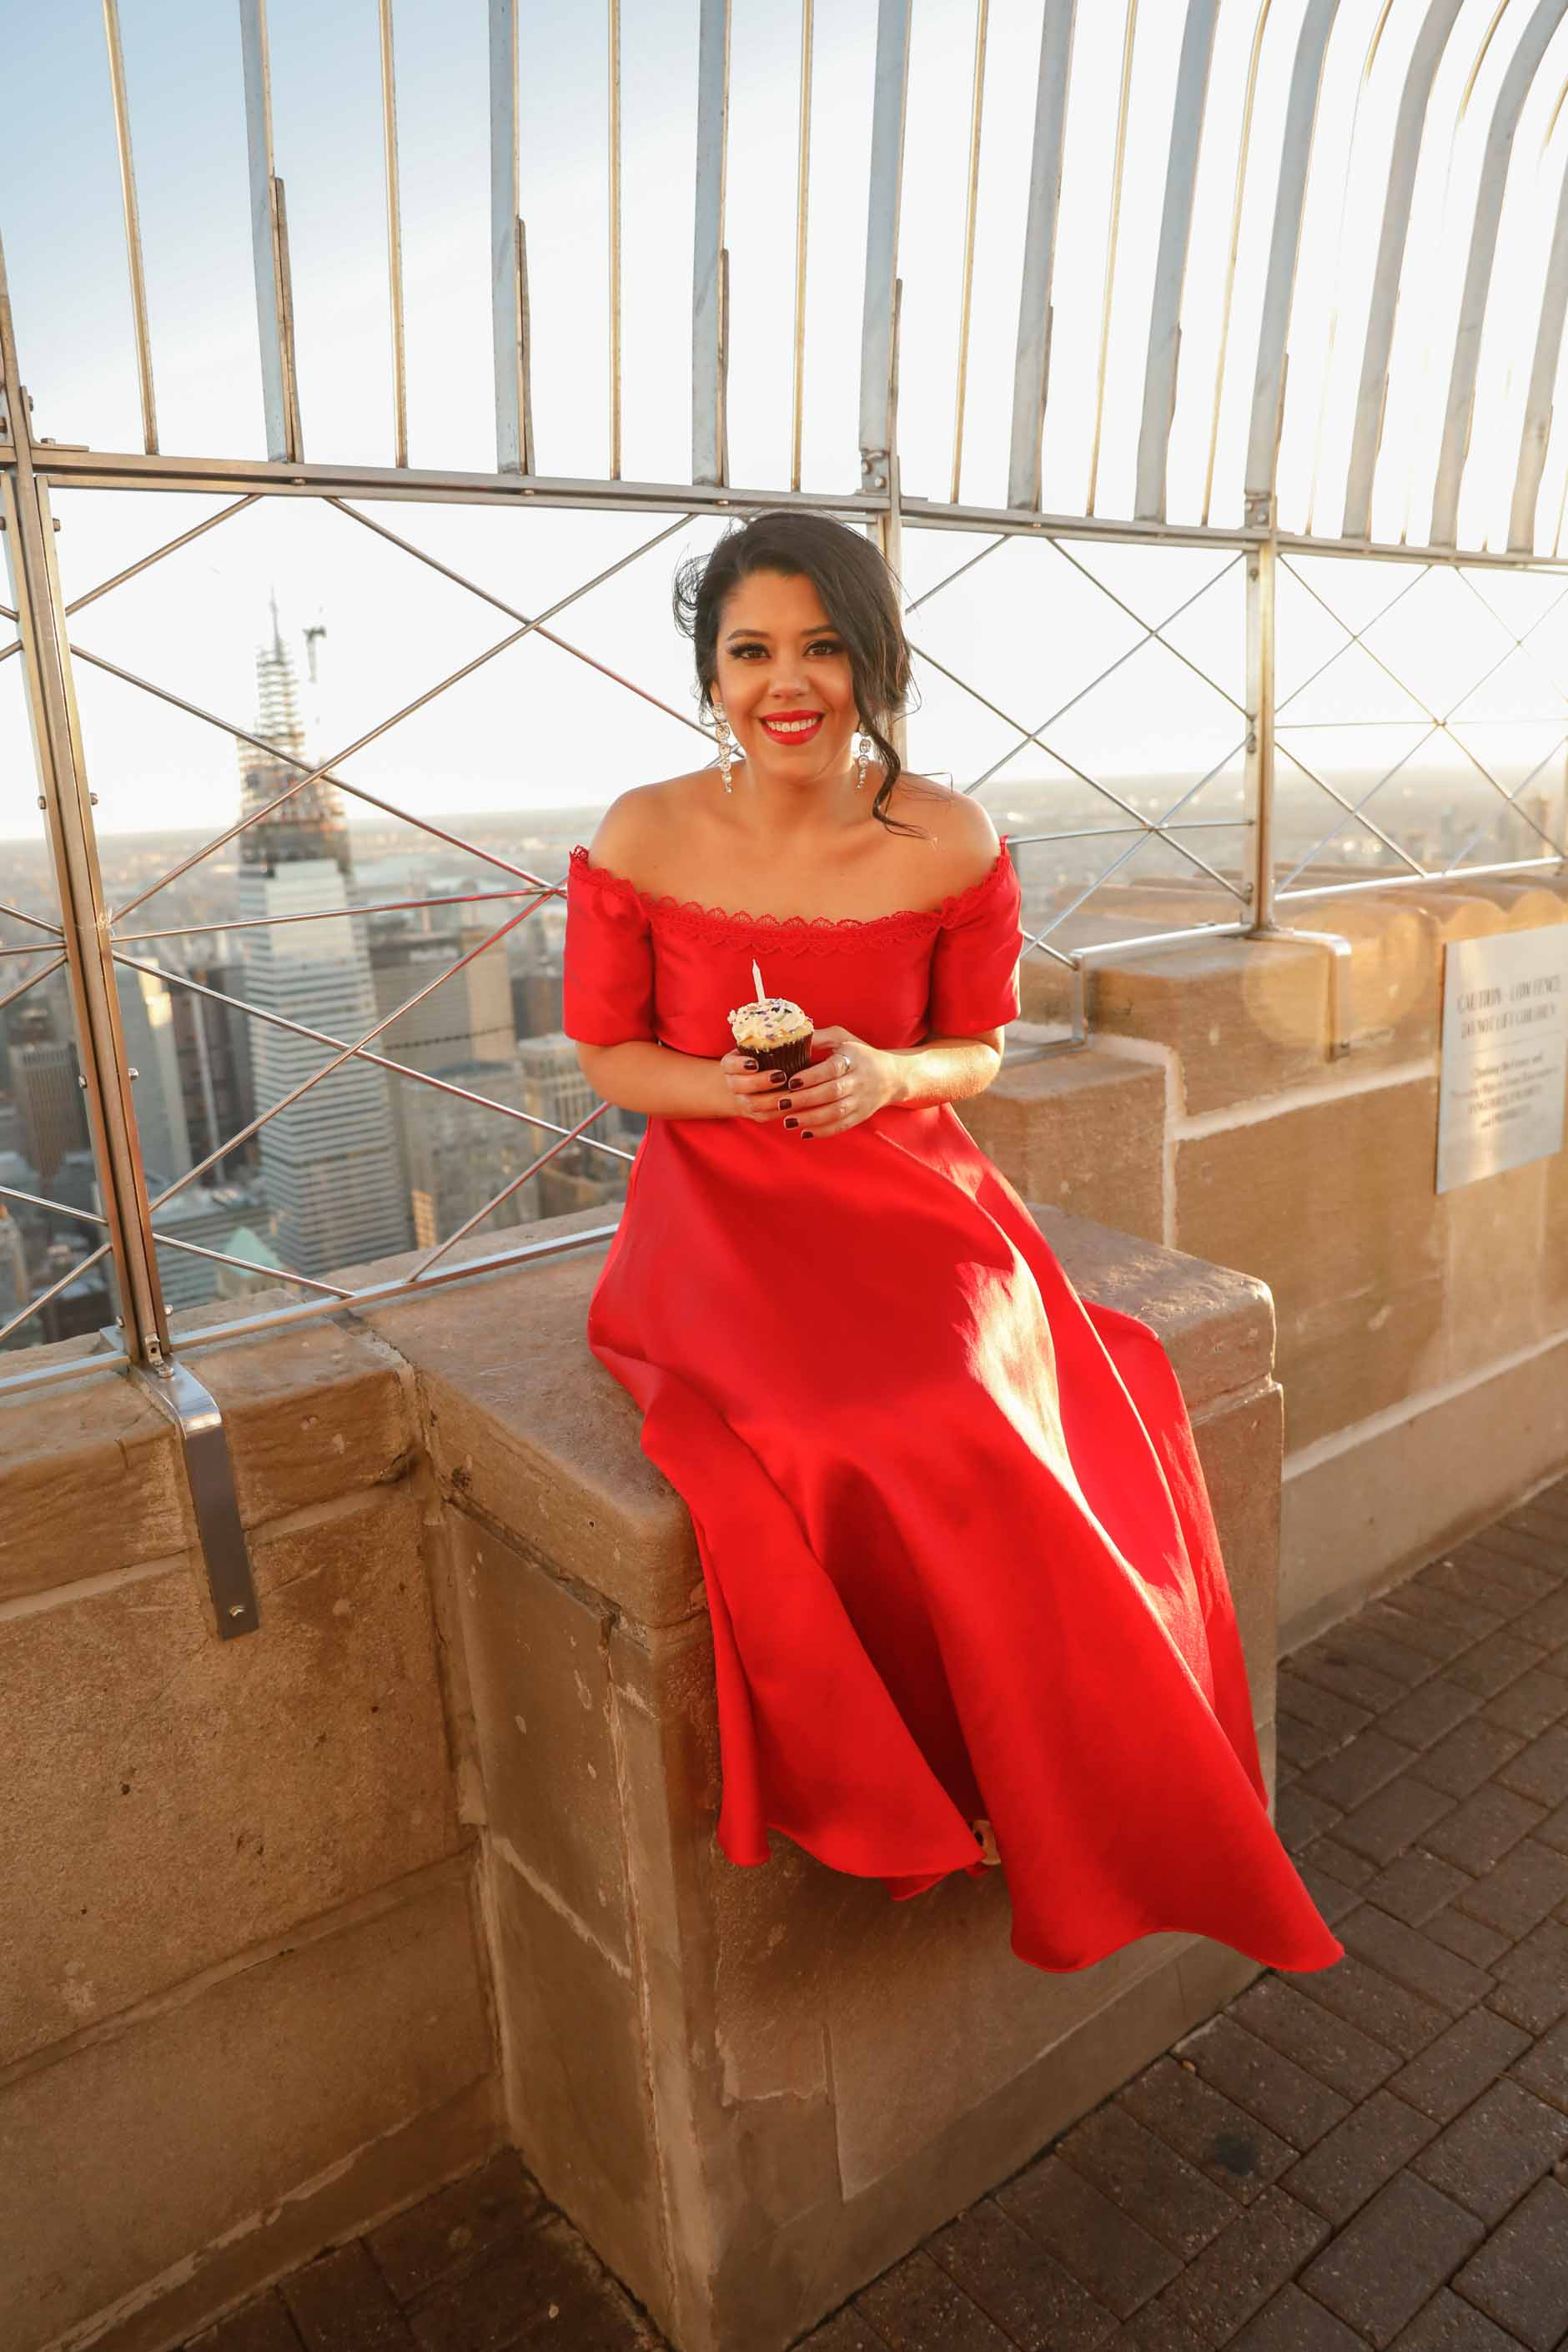 birthday shoot on empire state building